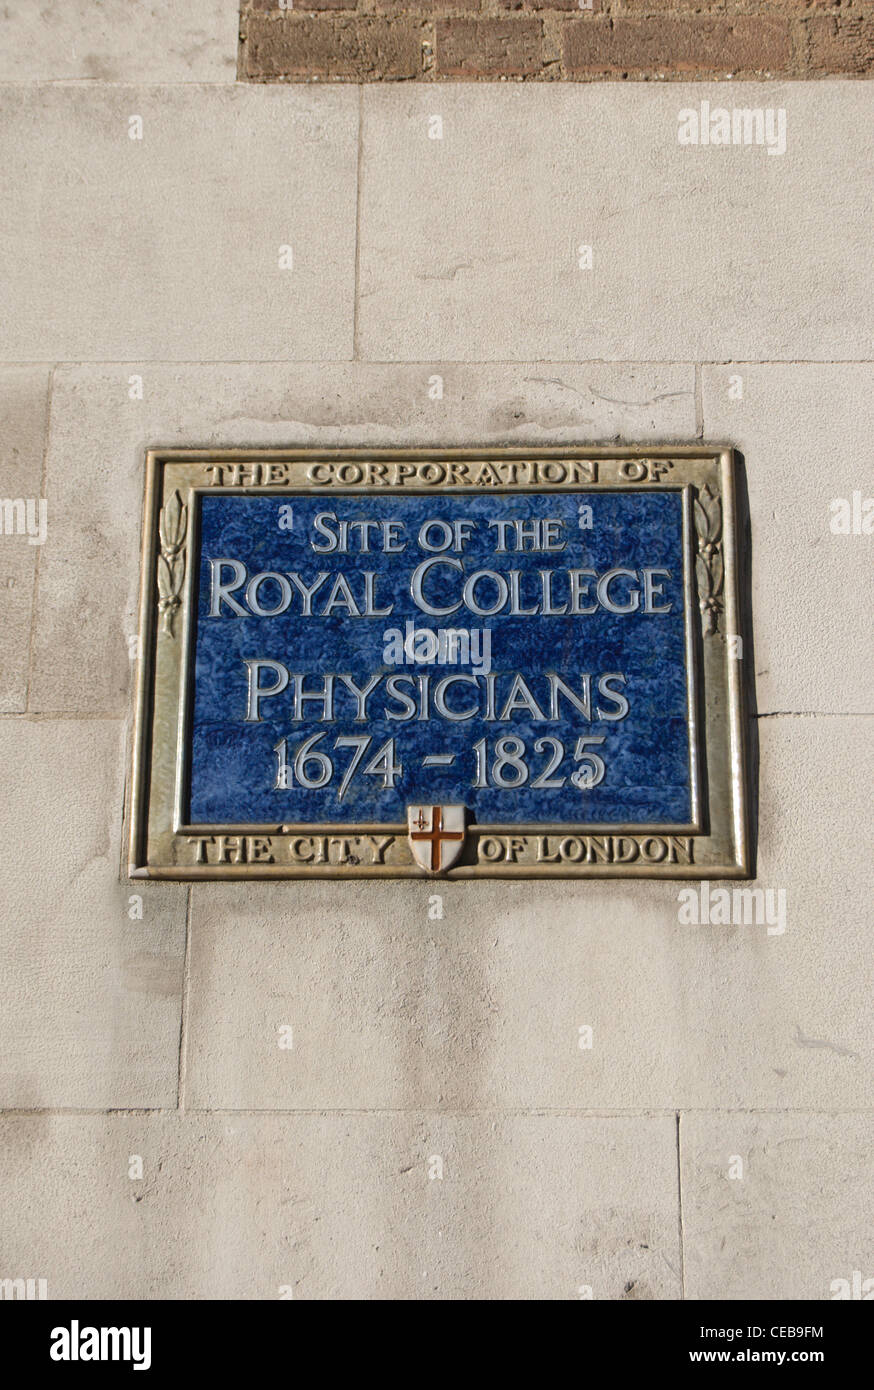 city of london blue plaque marking the 1674 to 1825 site of the royal college of physicians, warwick lane, london, - Stock Image